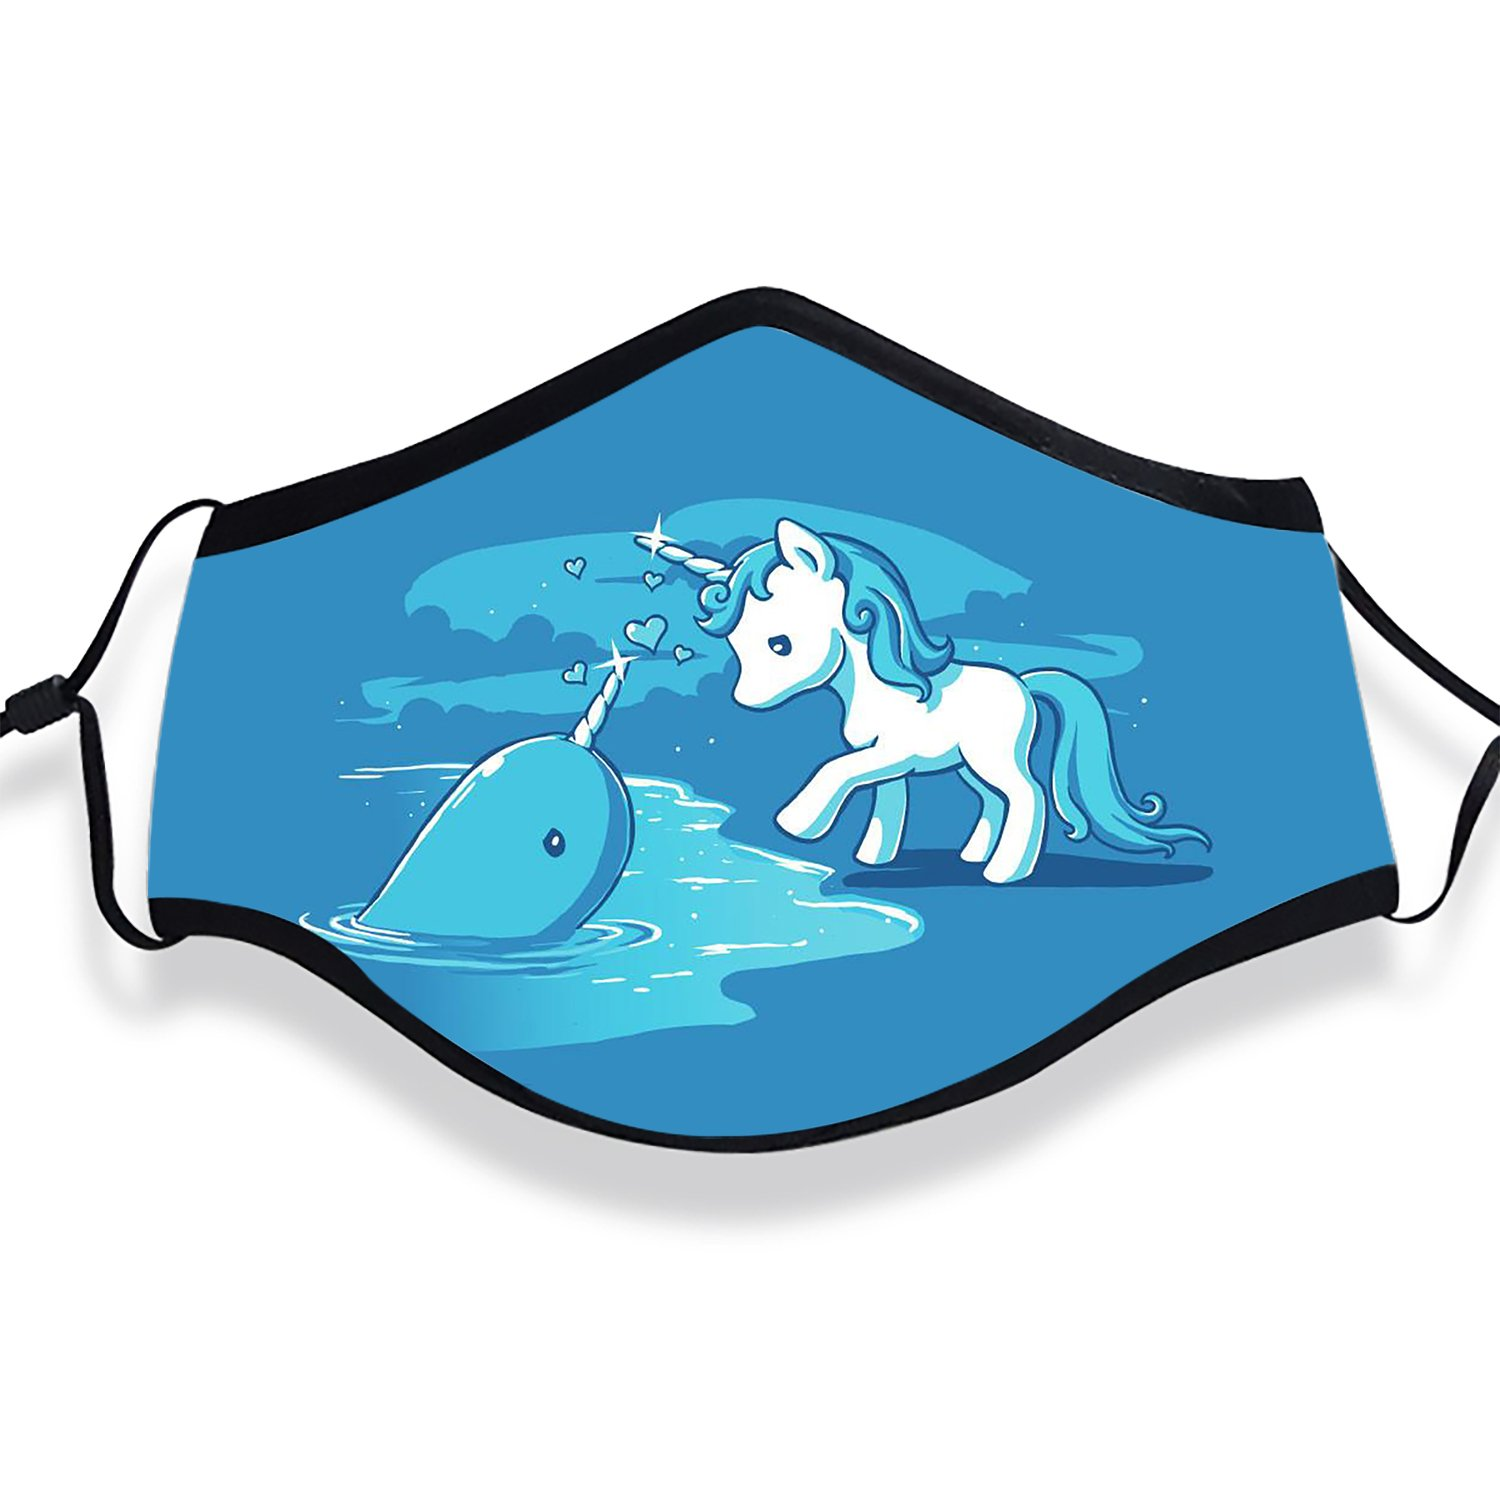 Whale Love Unicorn Anti Dust Face Mouth Cover Mask Respirator Cotton Protective Breath Warm Windproof Mask (Mask + Filters)